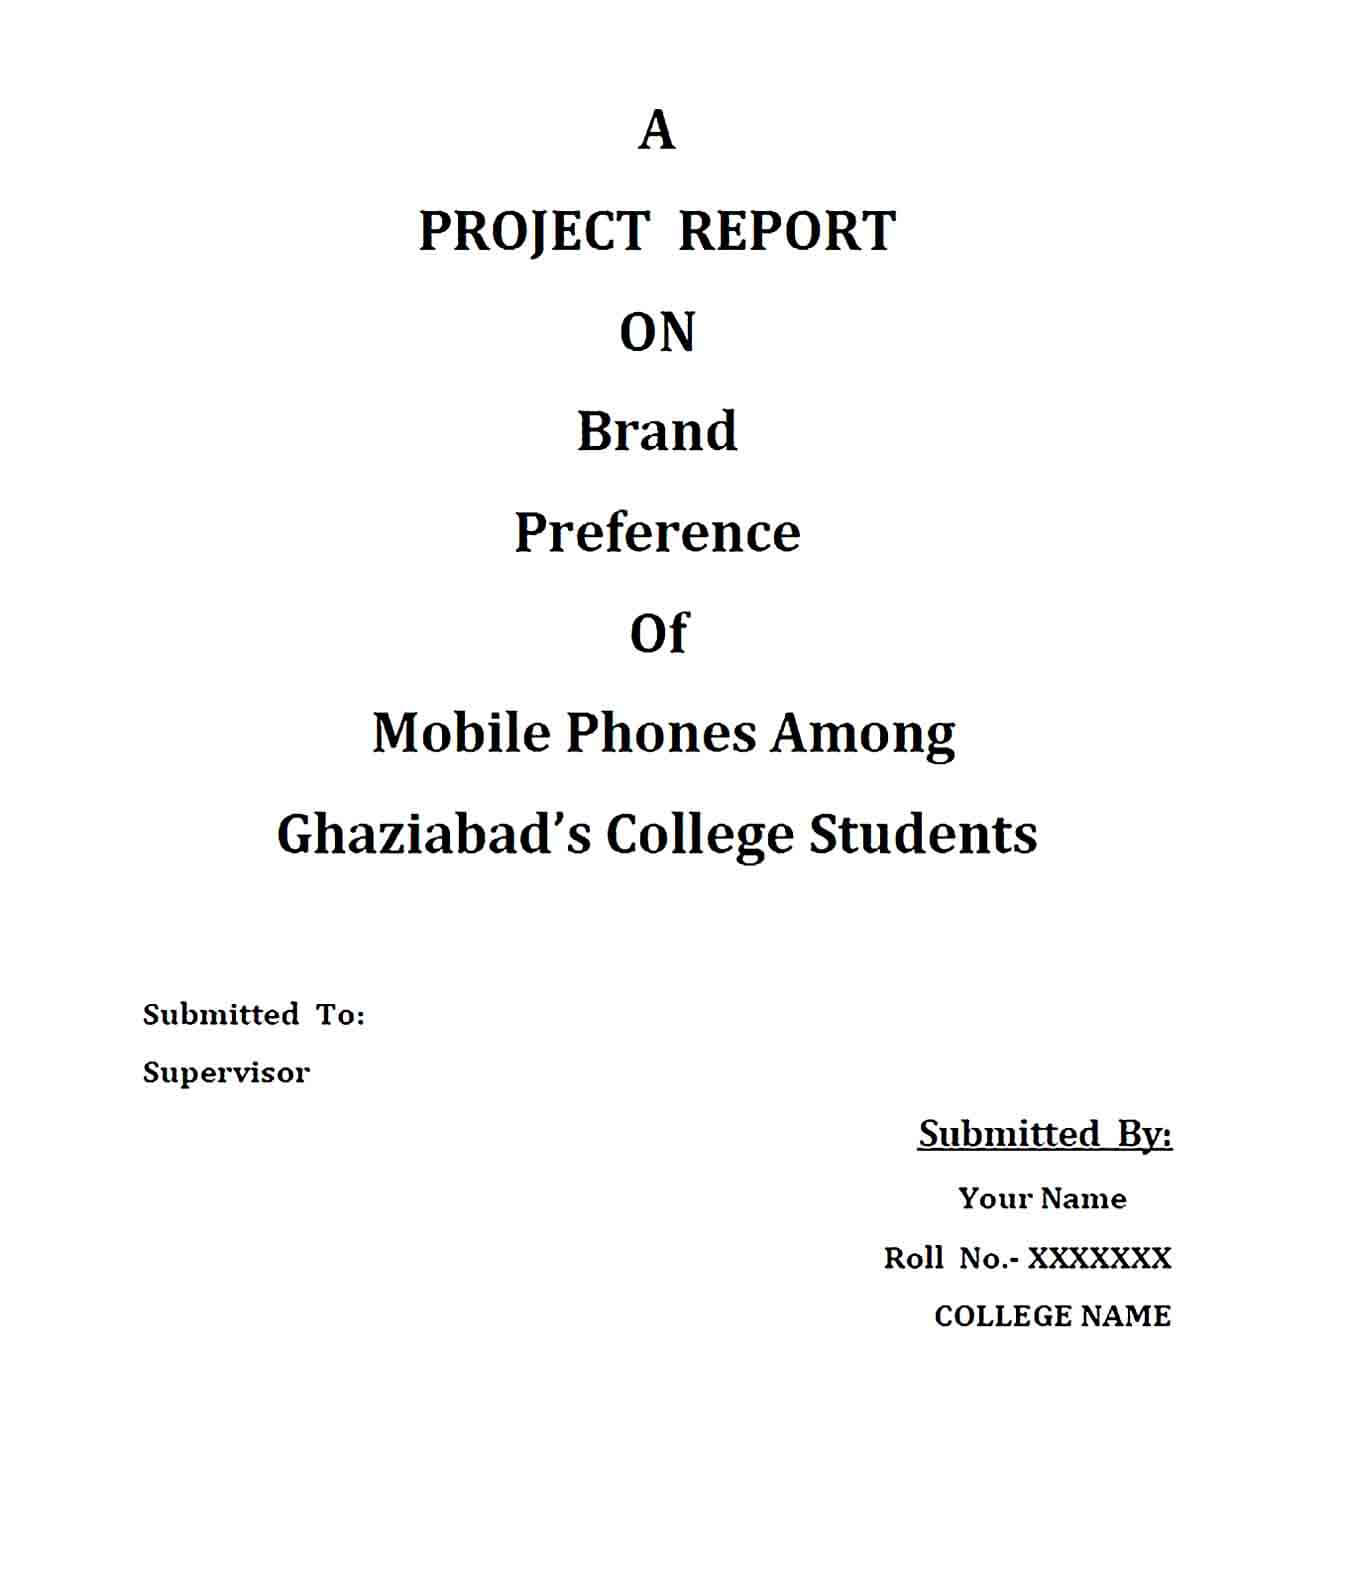 Sample College Project Report Template